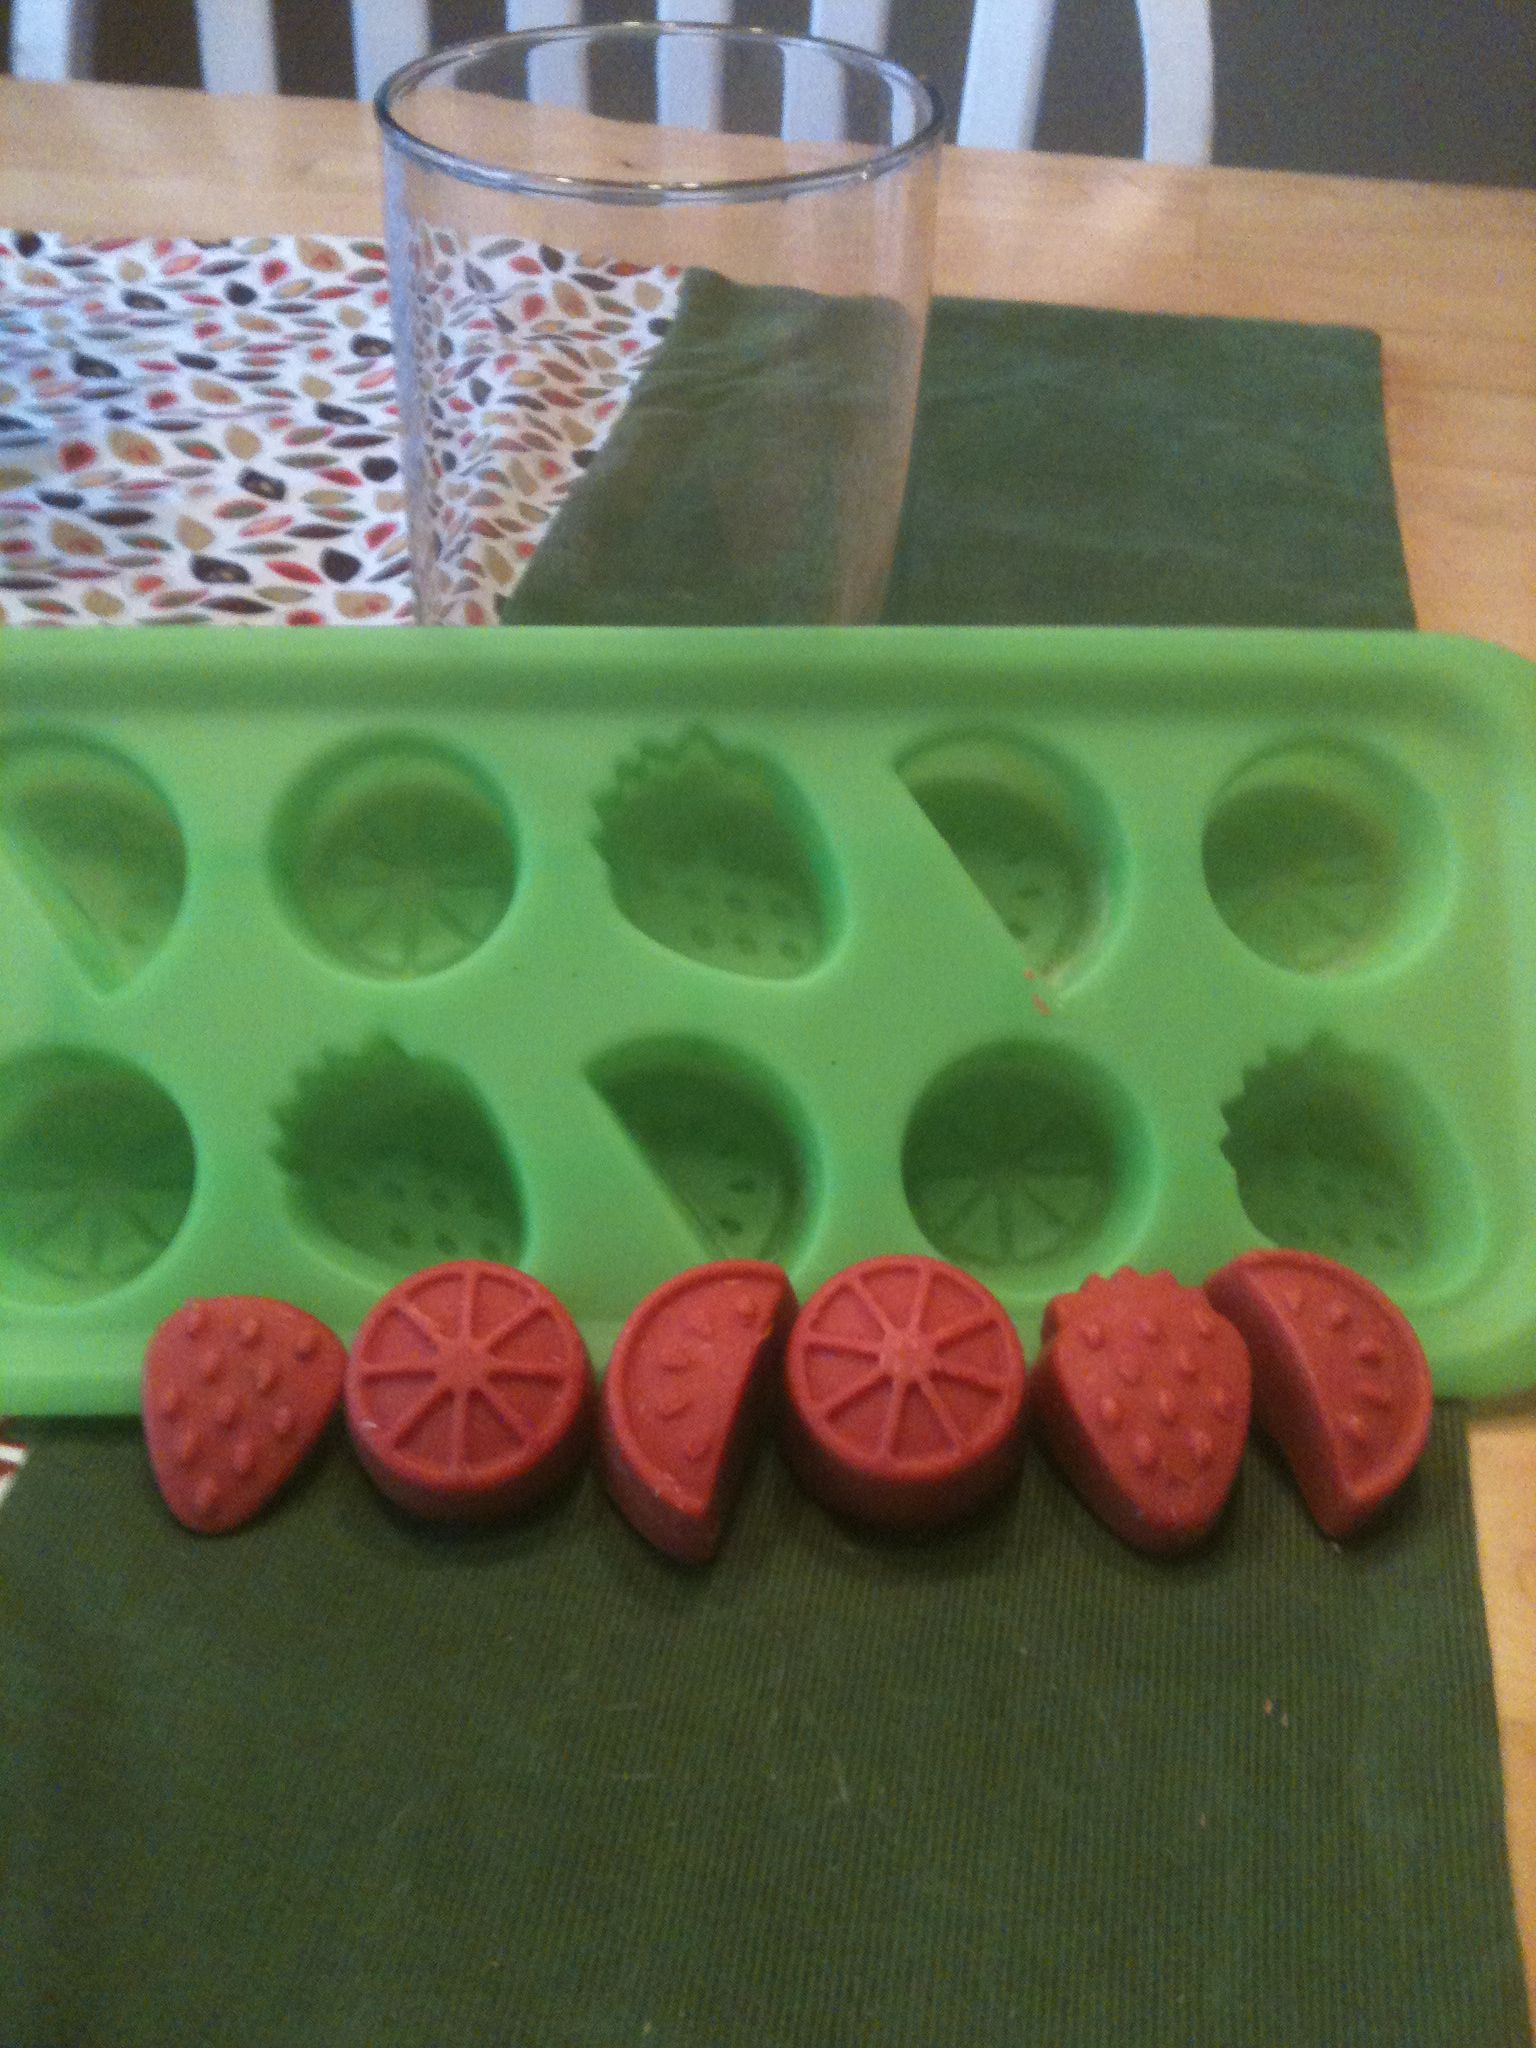 Pour your melted candle wax into silicone ice cube trays. When they harden, pop them out to reuse in Scentsy or other wax melt  warmers. I used what was left of a Yankee candle Perfect Pillar, and now I have the candle holder to reuse!